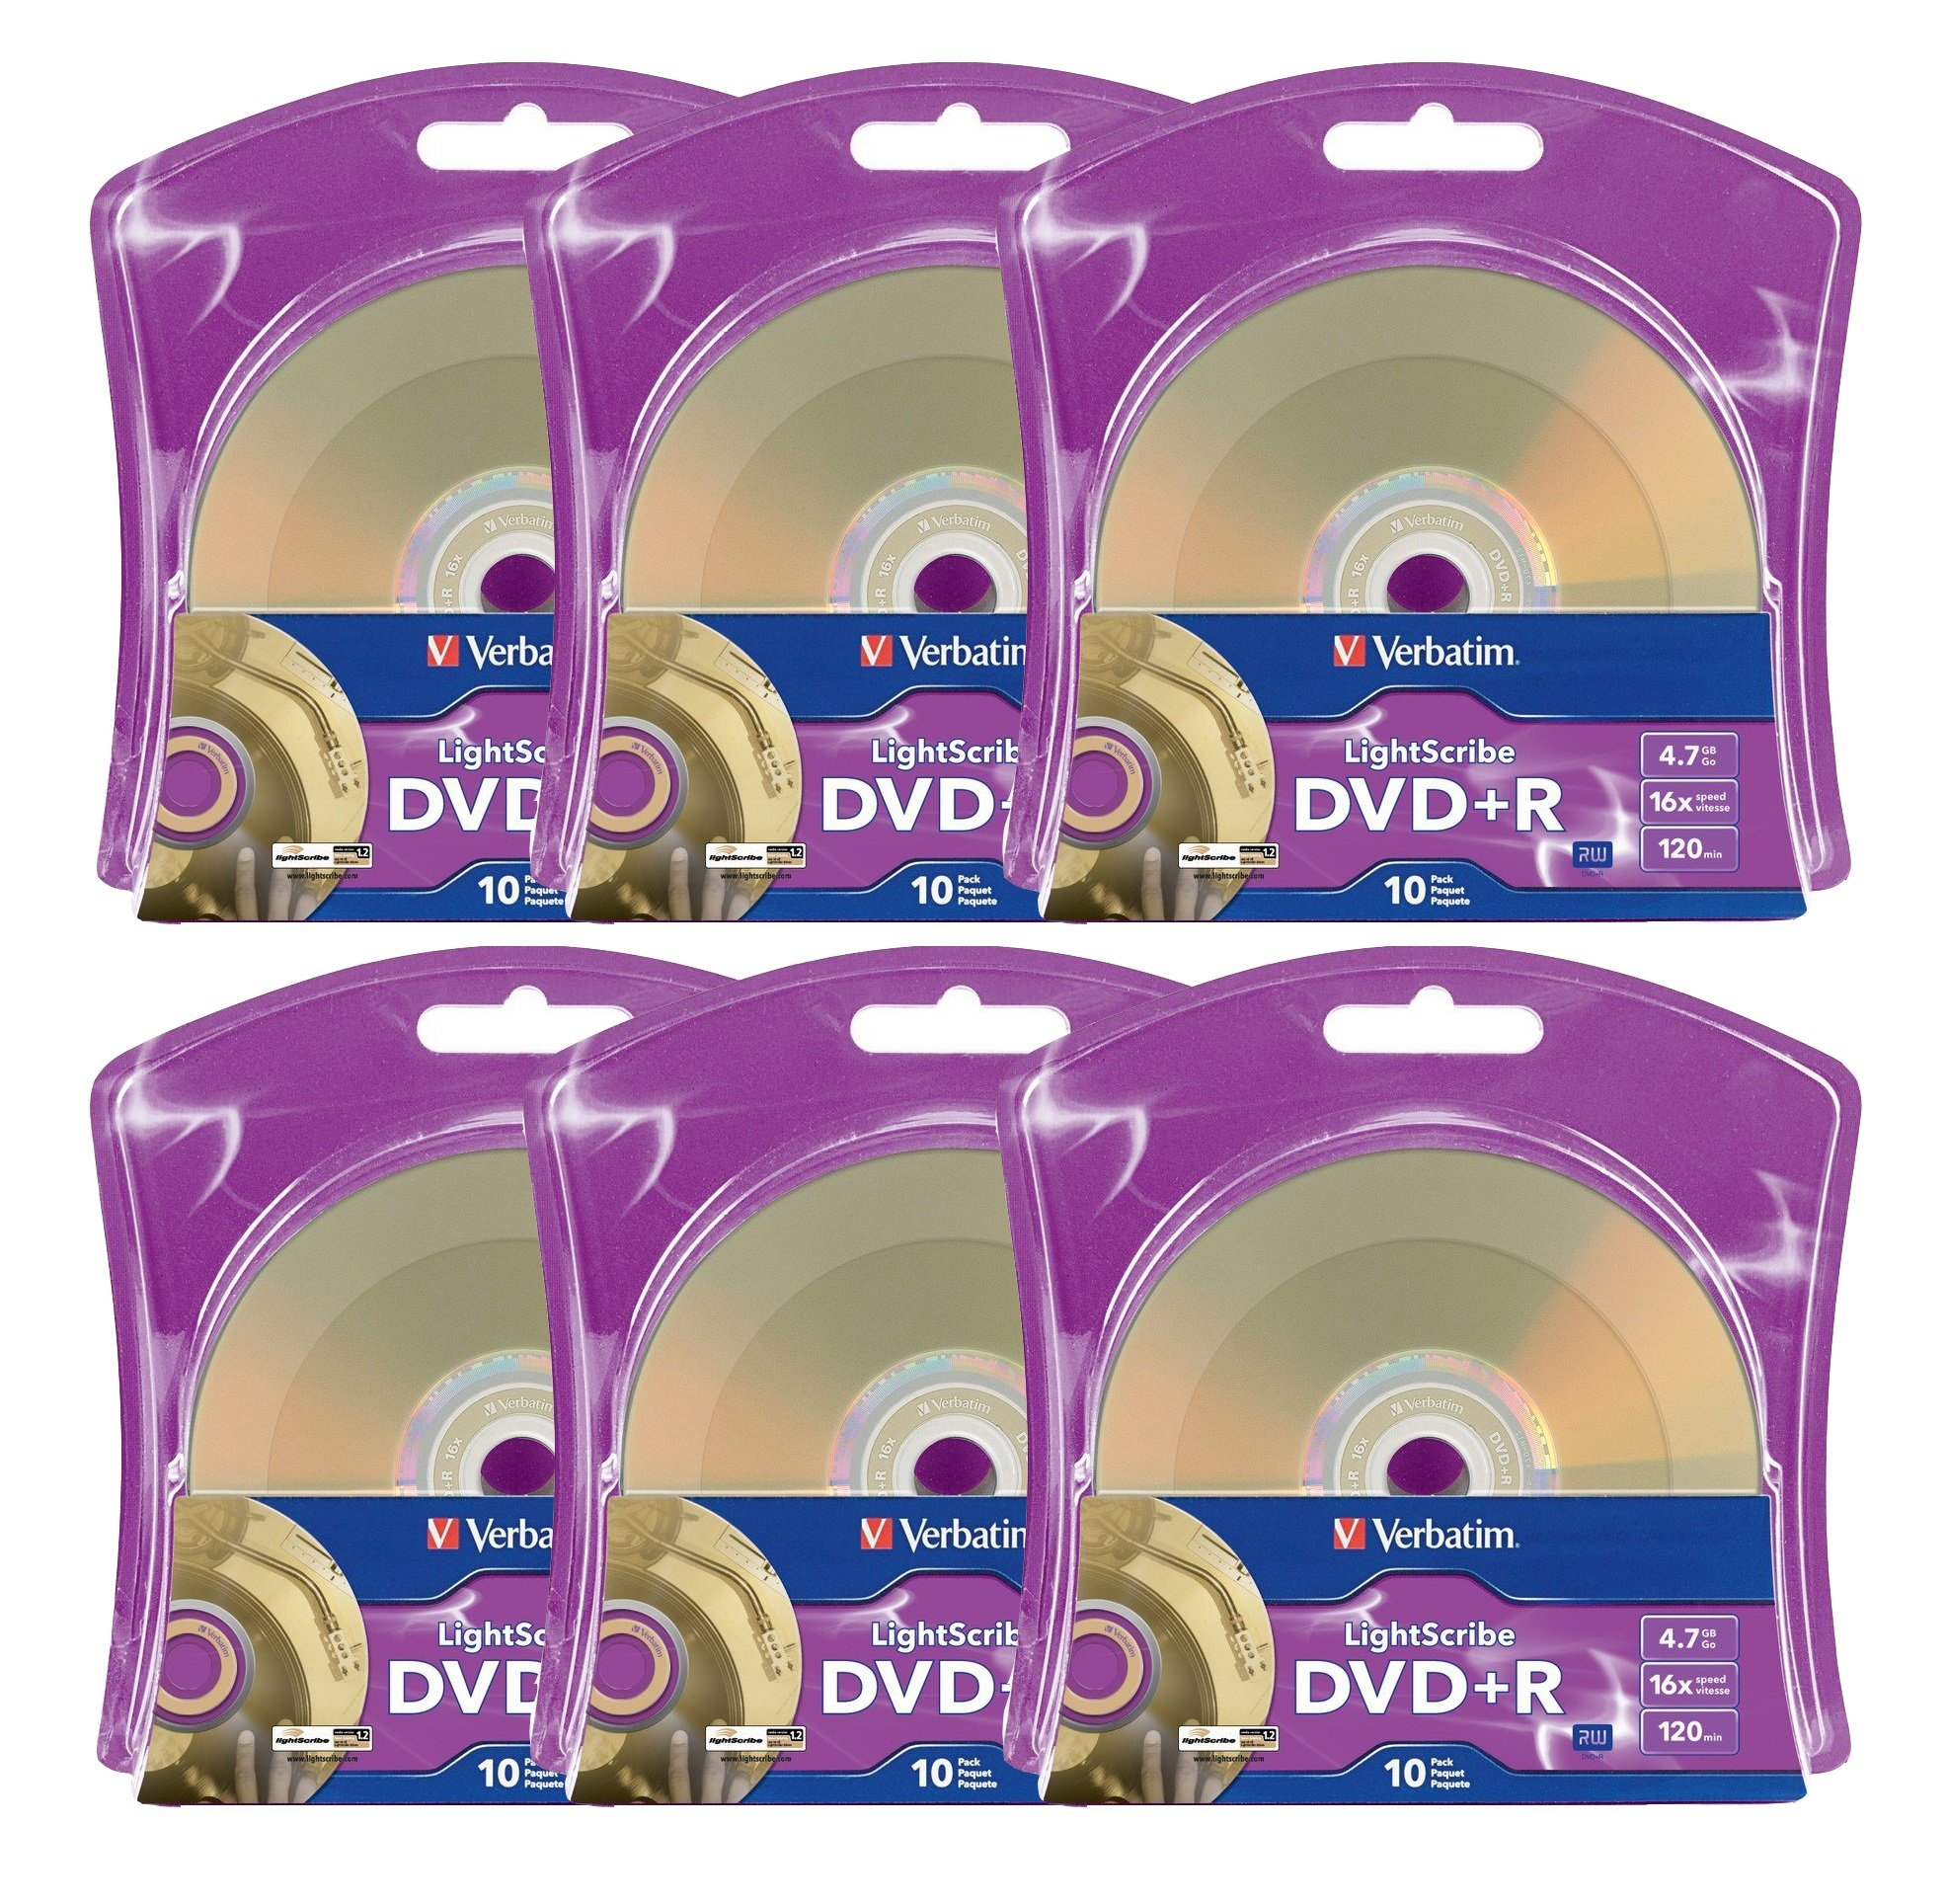 Verbatim 16x DVD+R LightScribe Blank Media, 4.7GB/120min - 60 Pack (6 x 10 Packs) by Produplicator